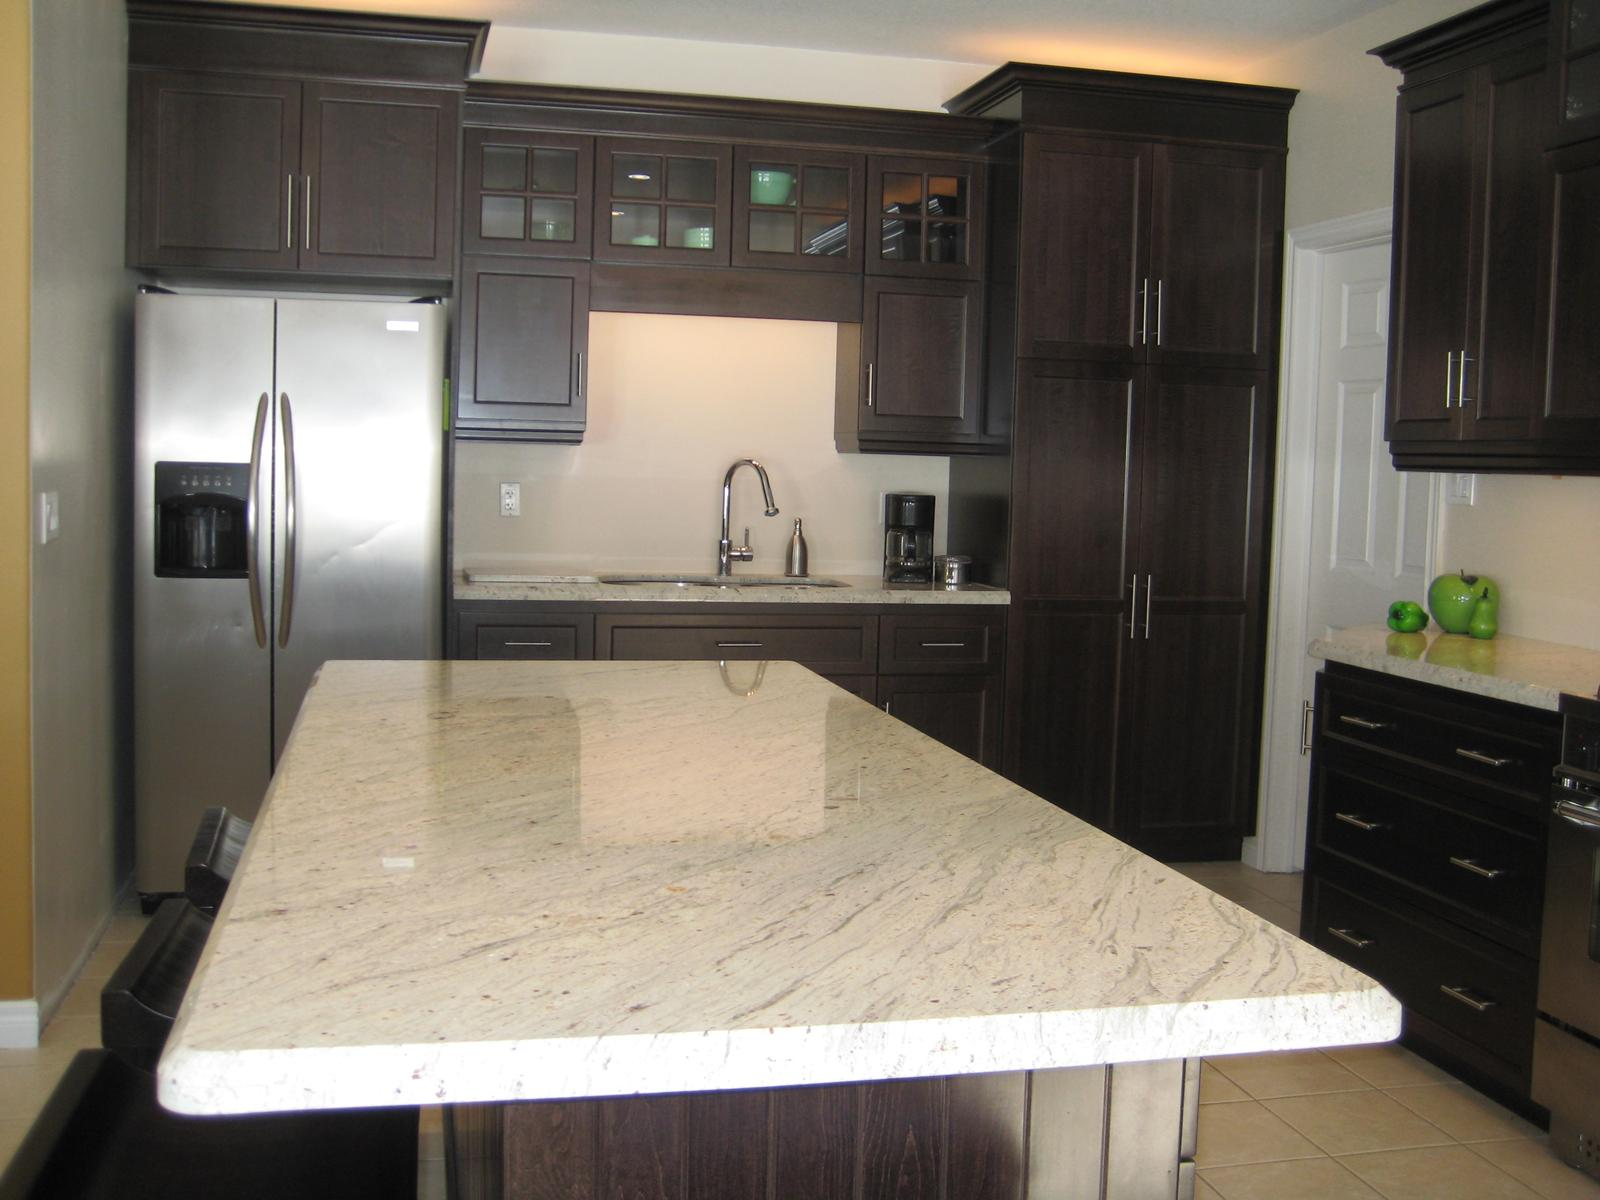 Luxurious River White Granite Countertop Design In Clic Kitchen With Black Wooden Cabinetry And Island